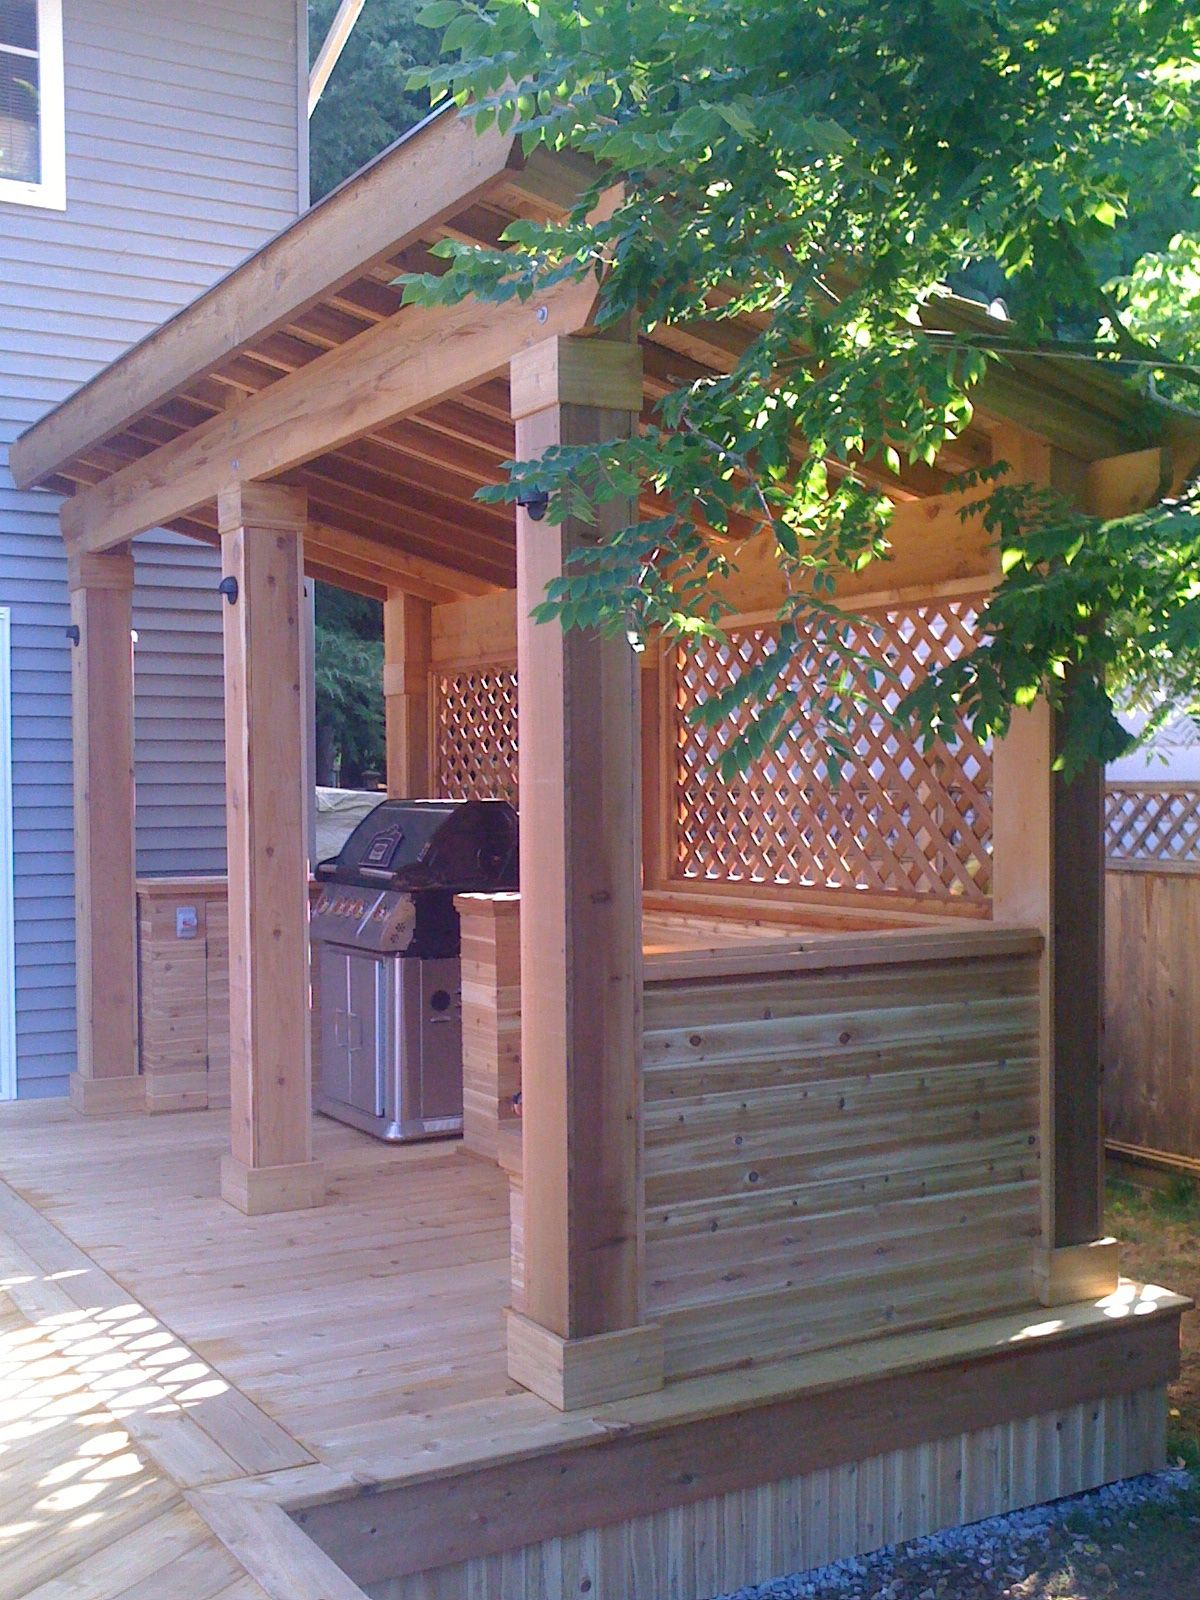 Find This Pin And More On Back Yard Ideas By Mikebritto23.